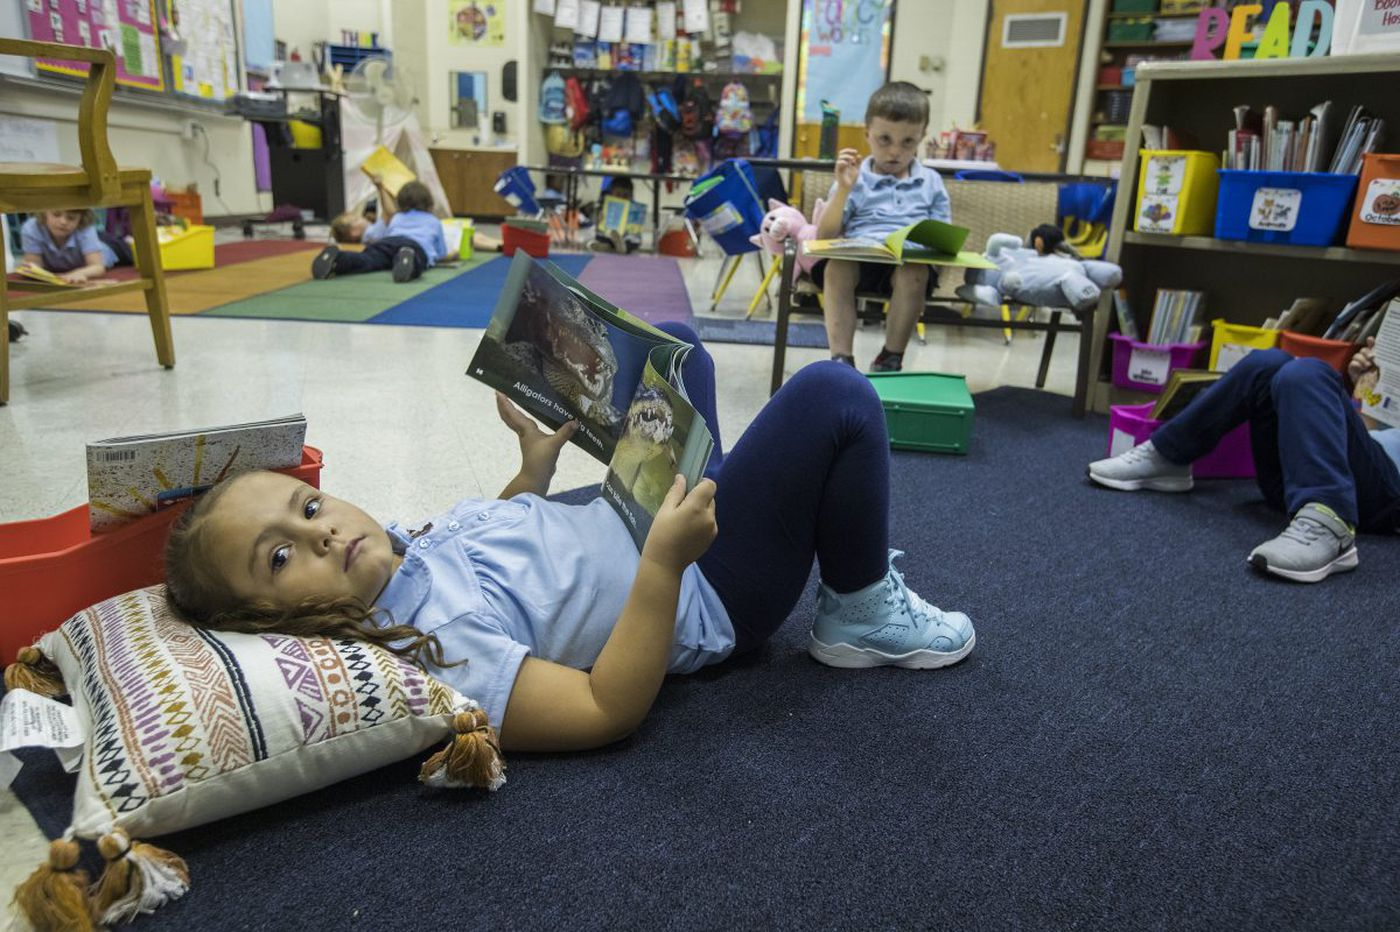 $450K from Comcast CEO, wife helps Philly schools hit library campaign mark